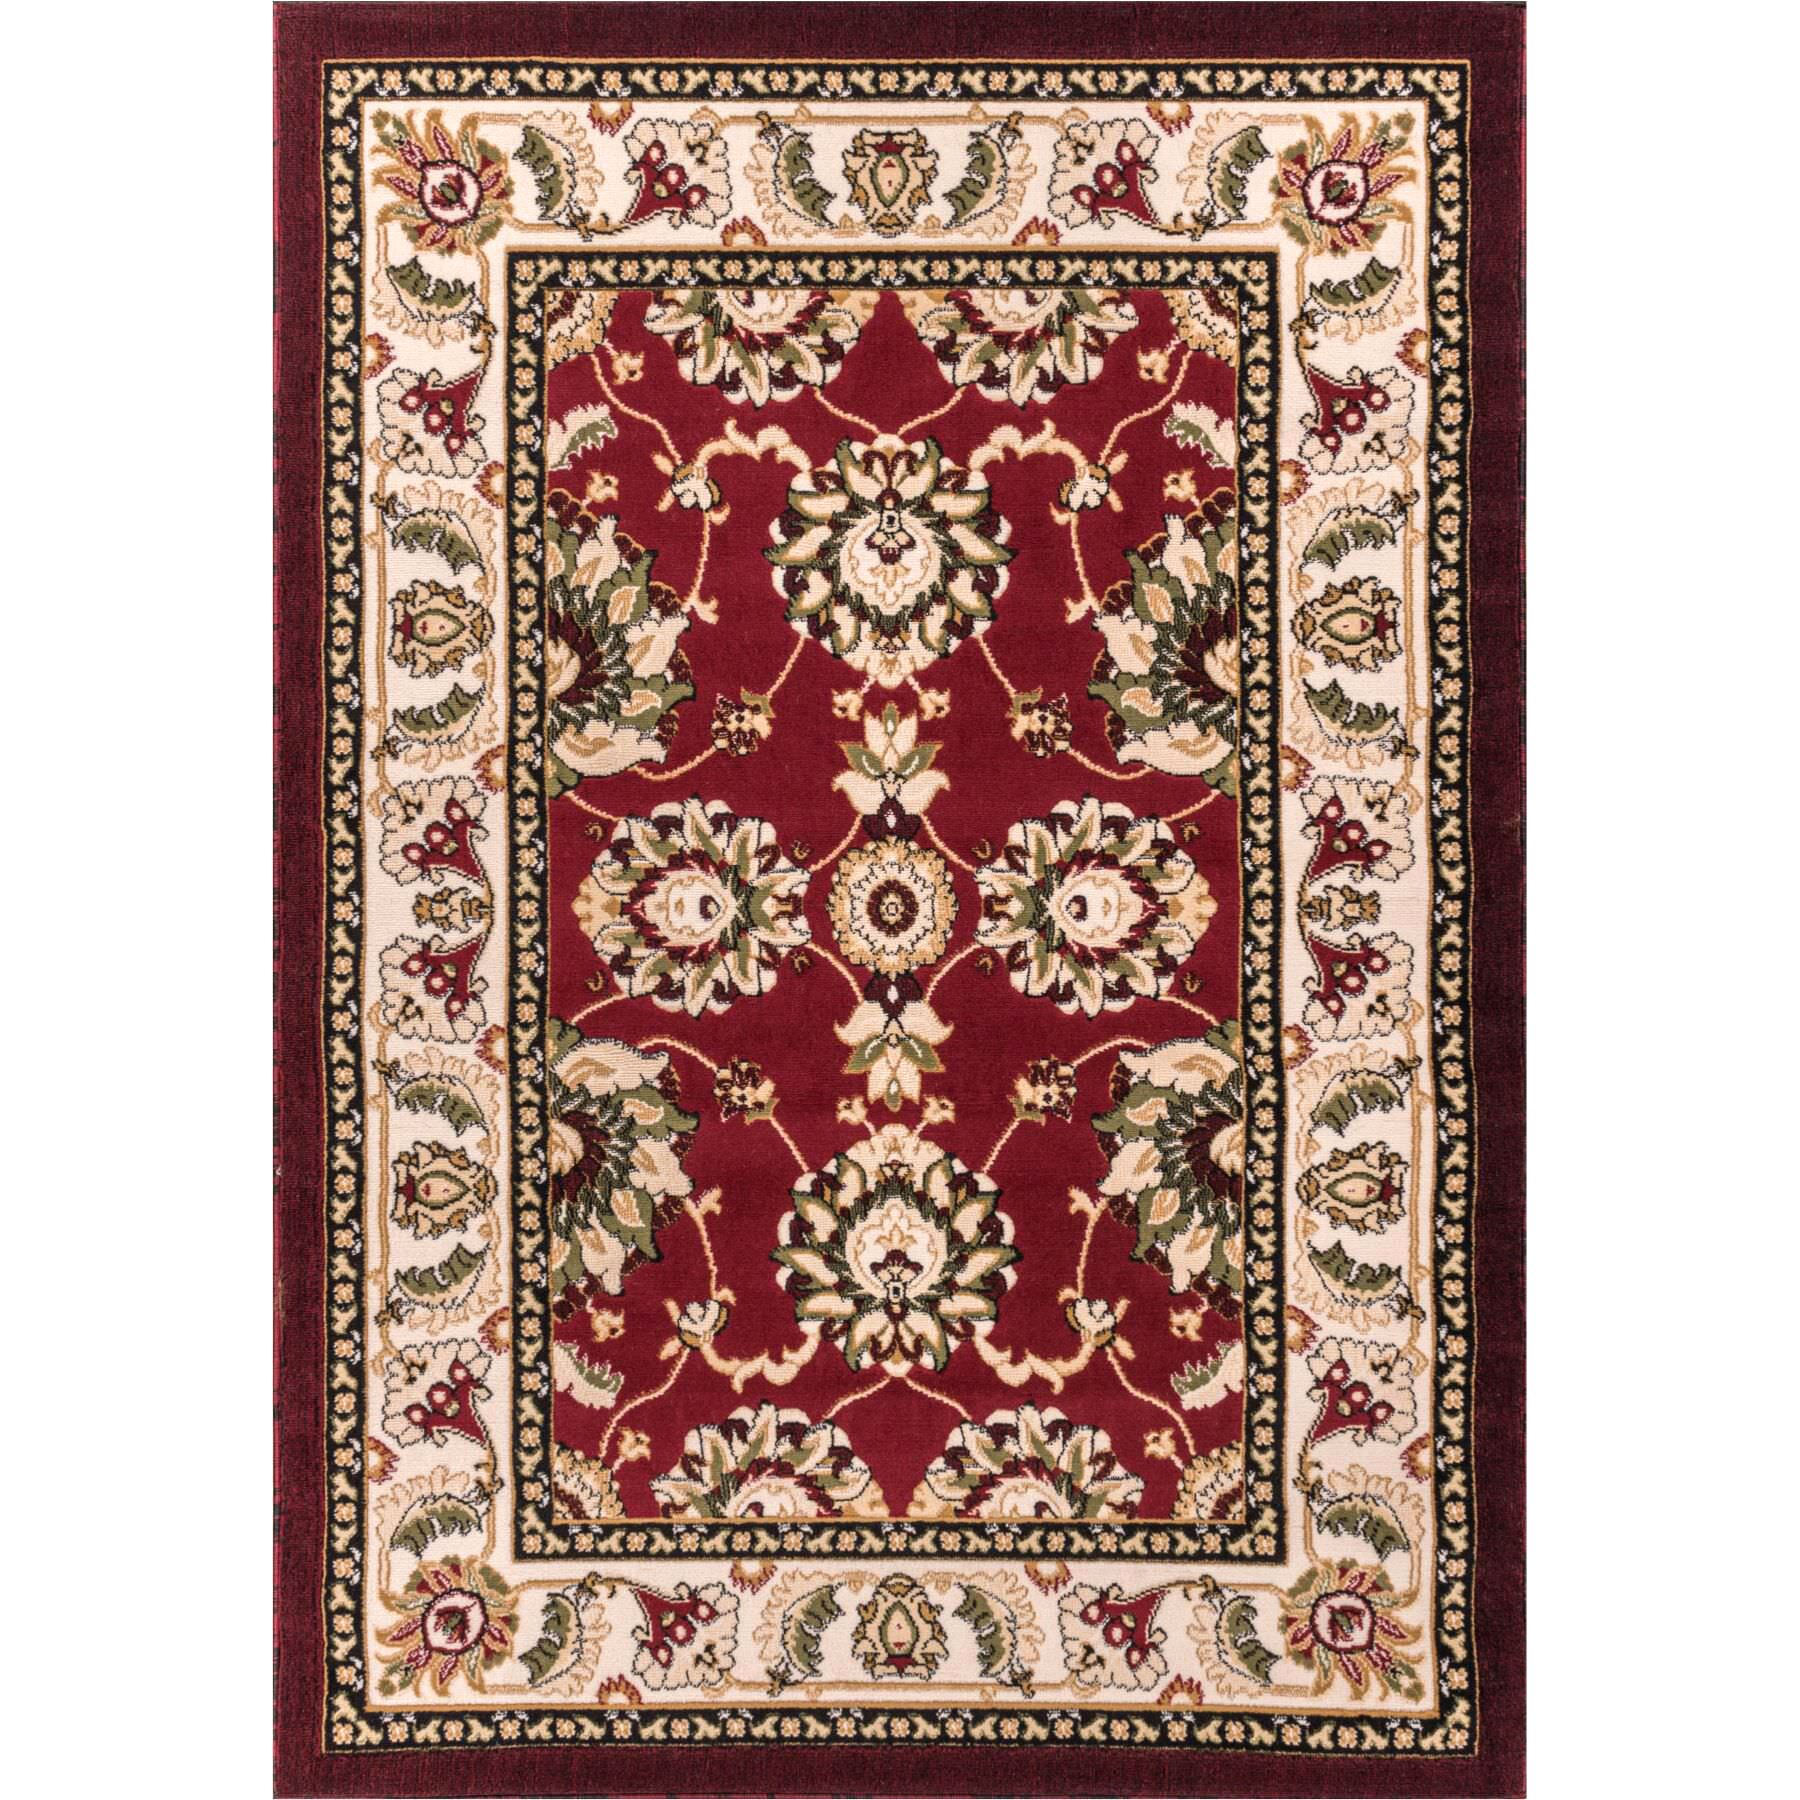 Comfy Living Red/Ivory Area Rug Rug Size: Rectangle 5' x 7'2''